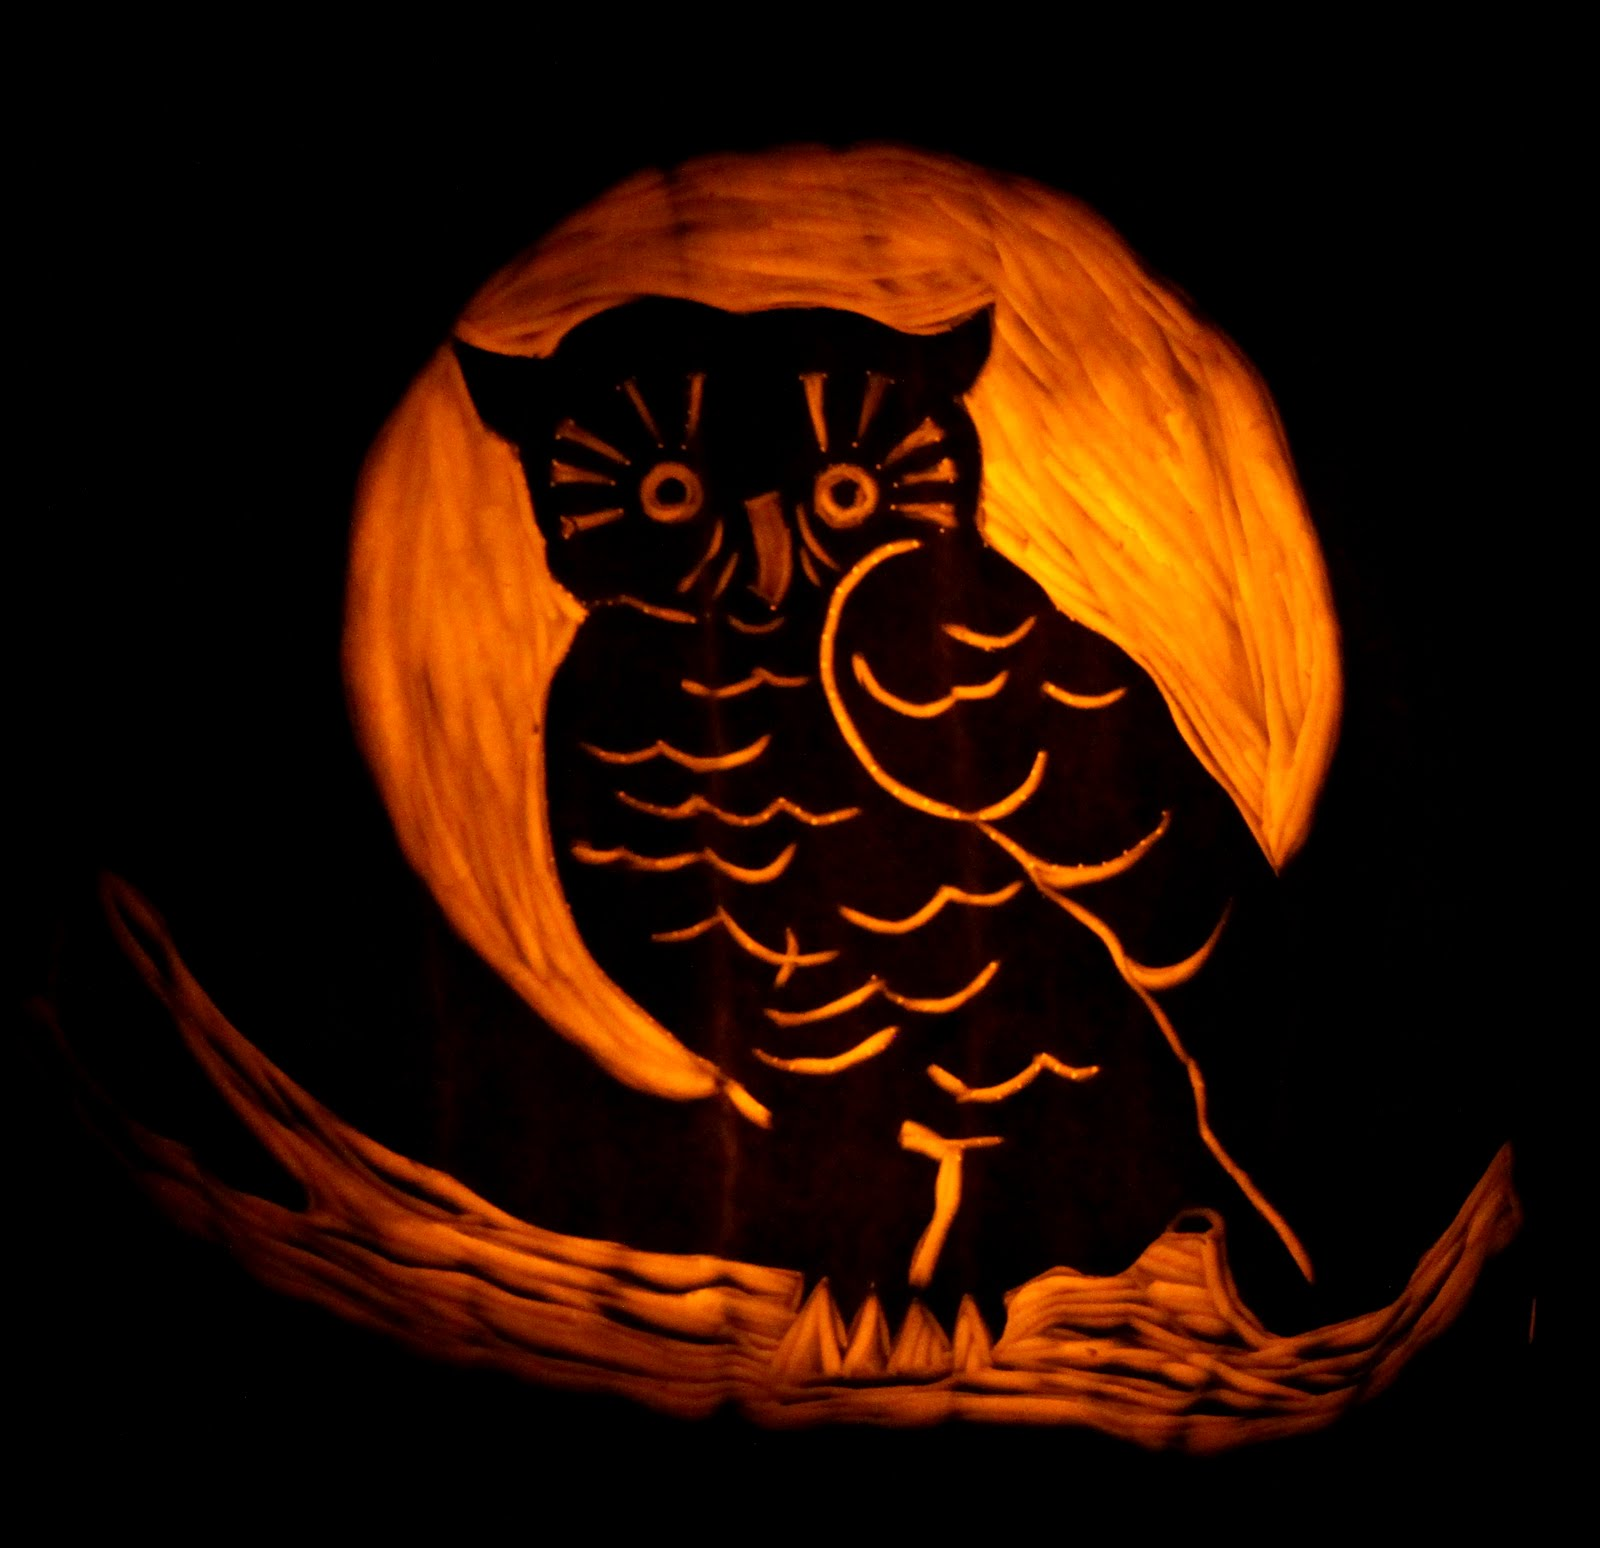 Designed by chance all hallows eve pumpkin tutorial